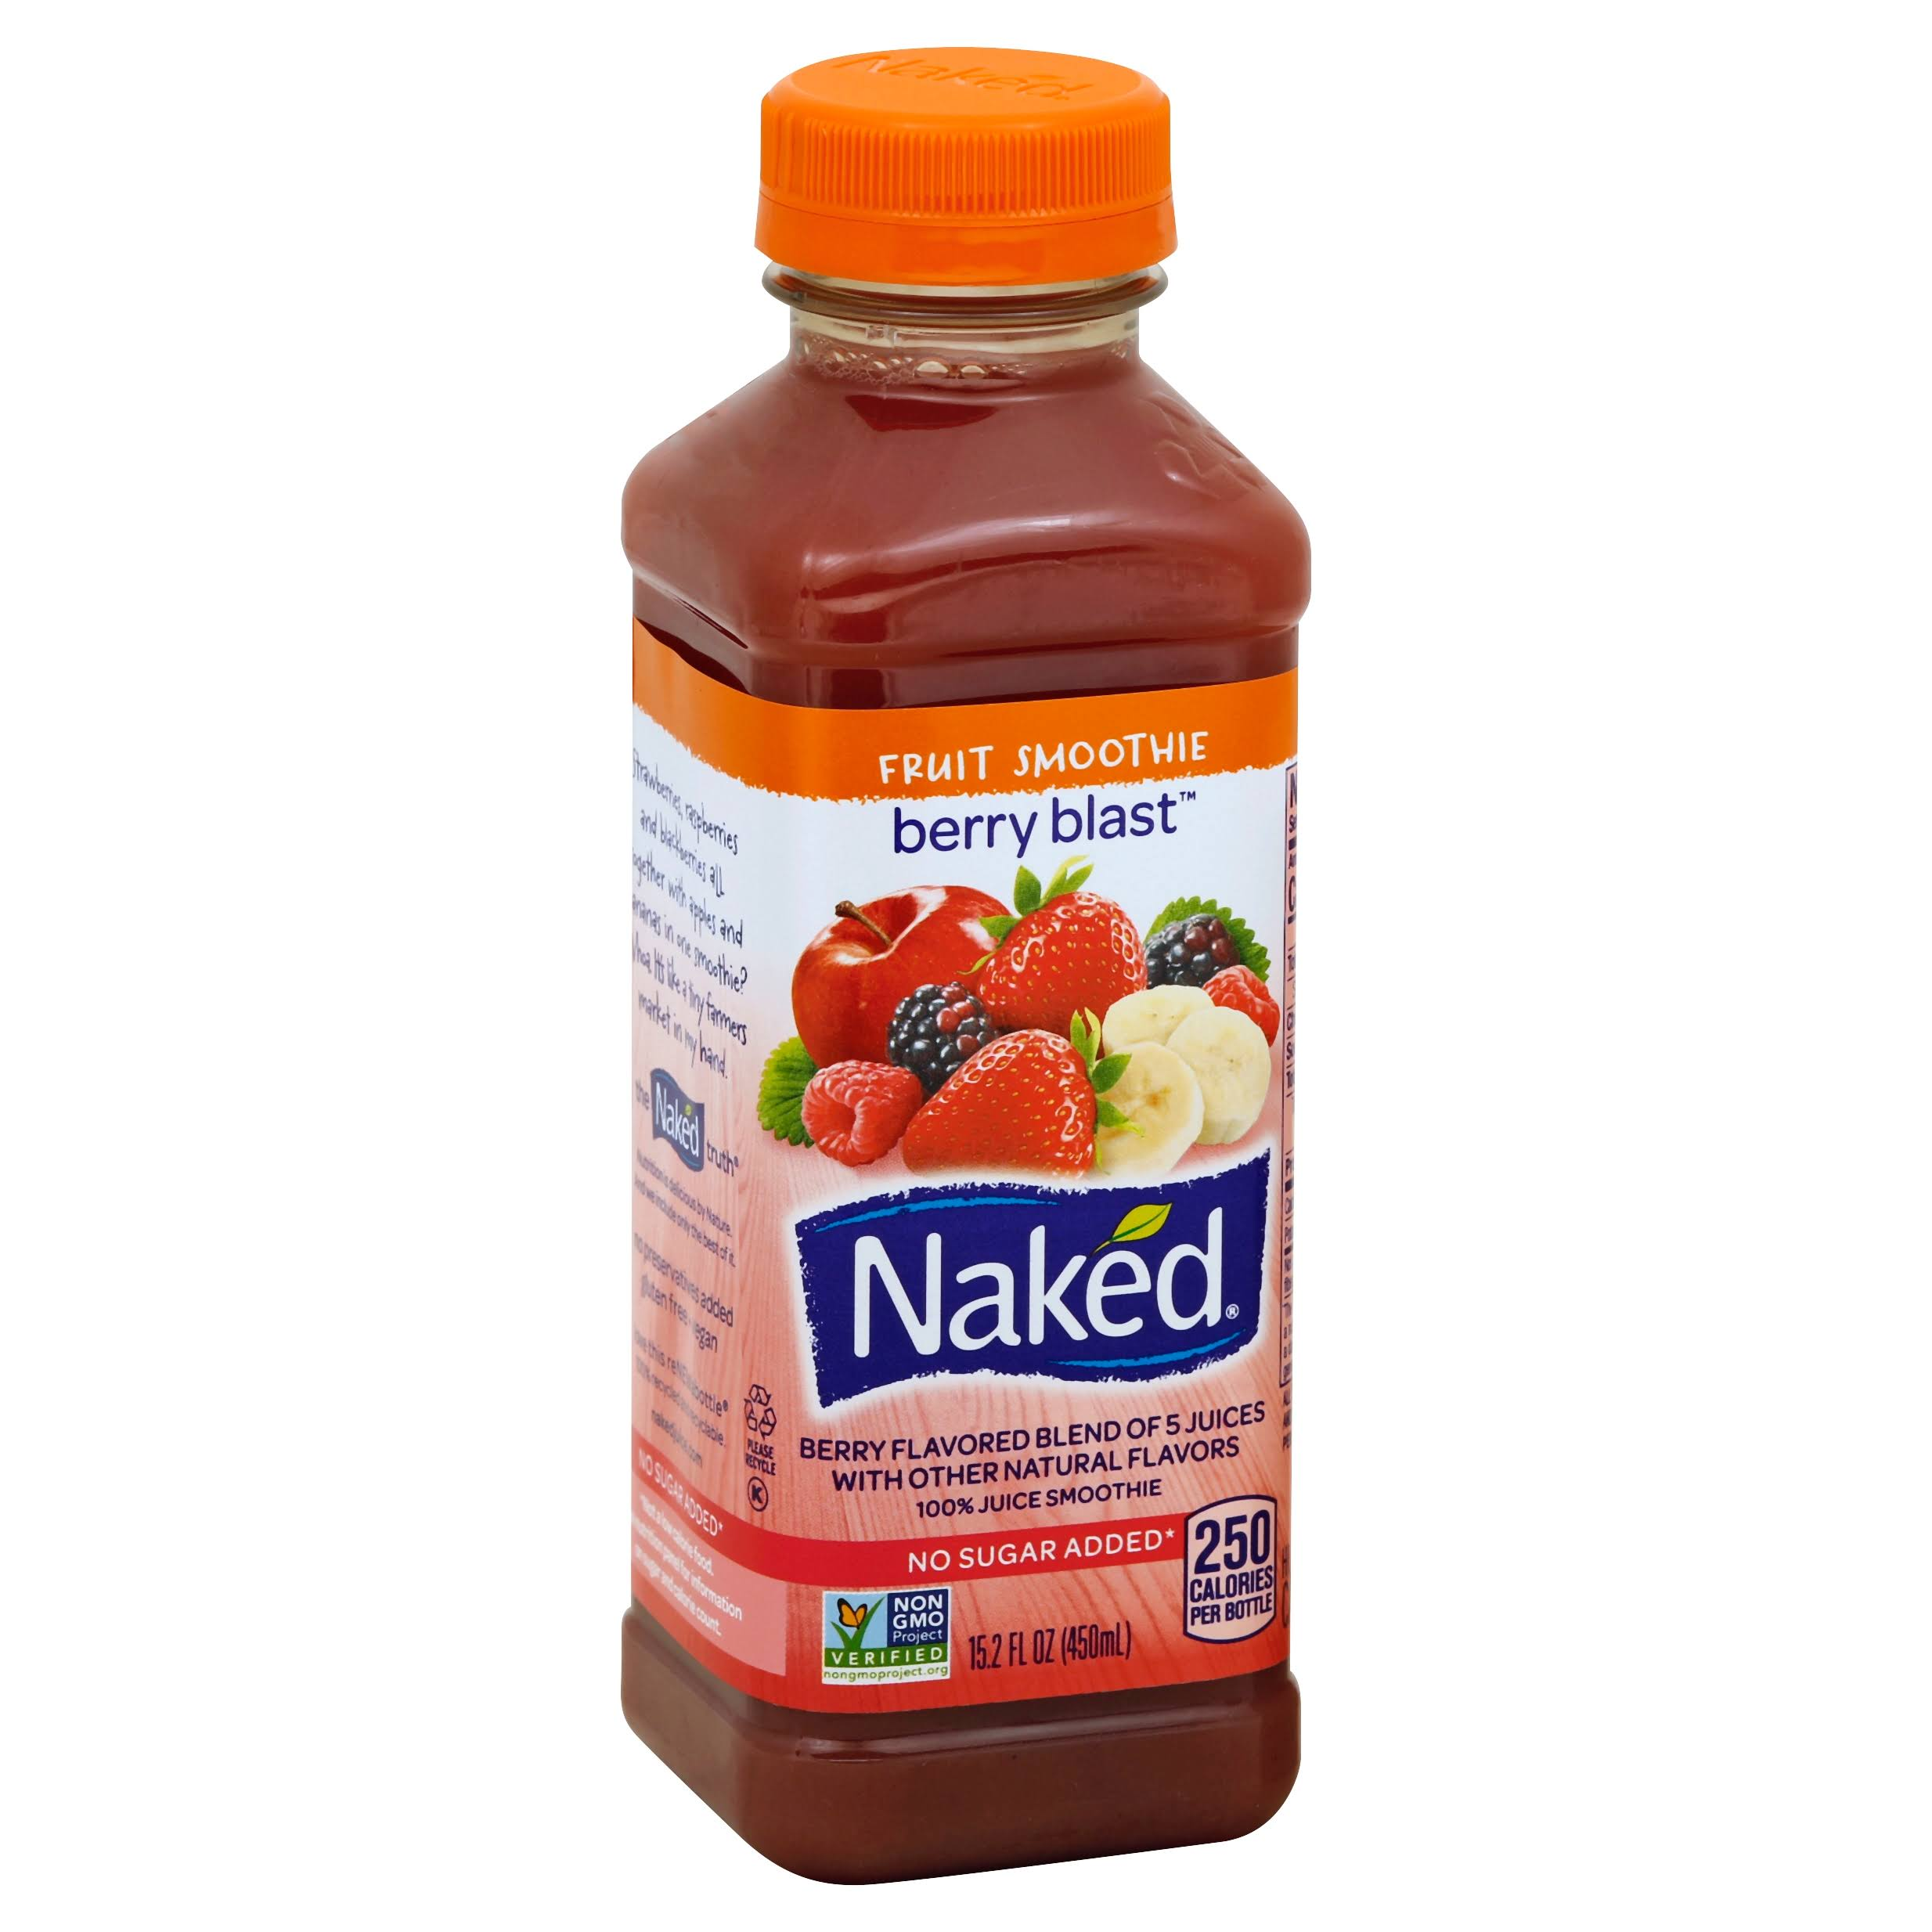 Naked Juice Smoothie - Berry Blast